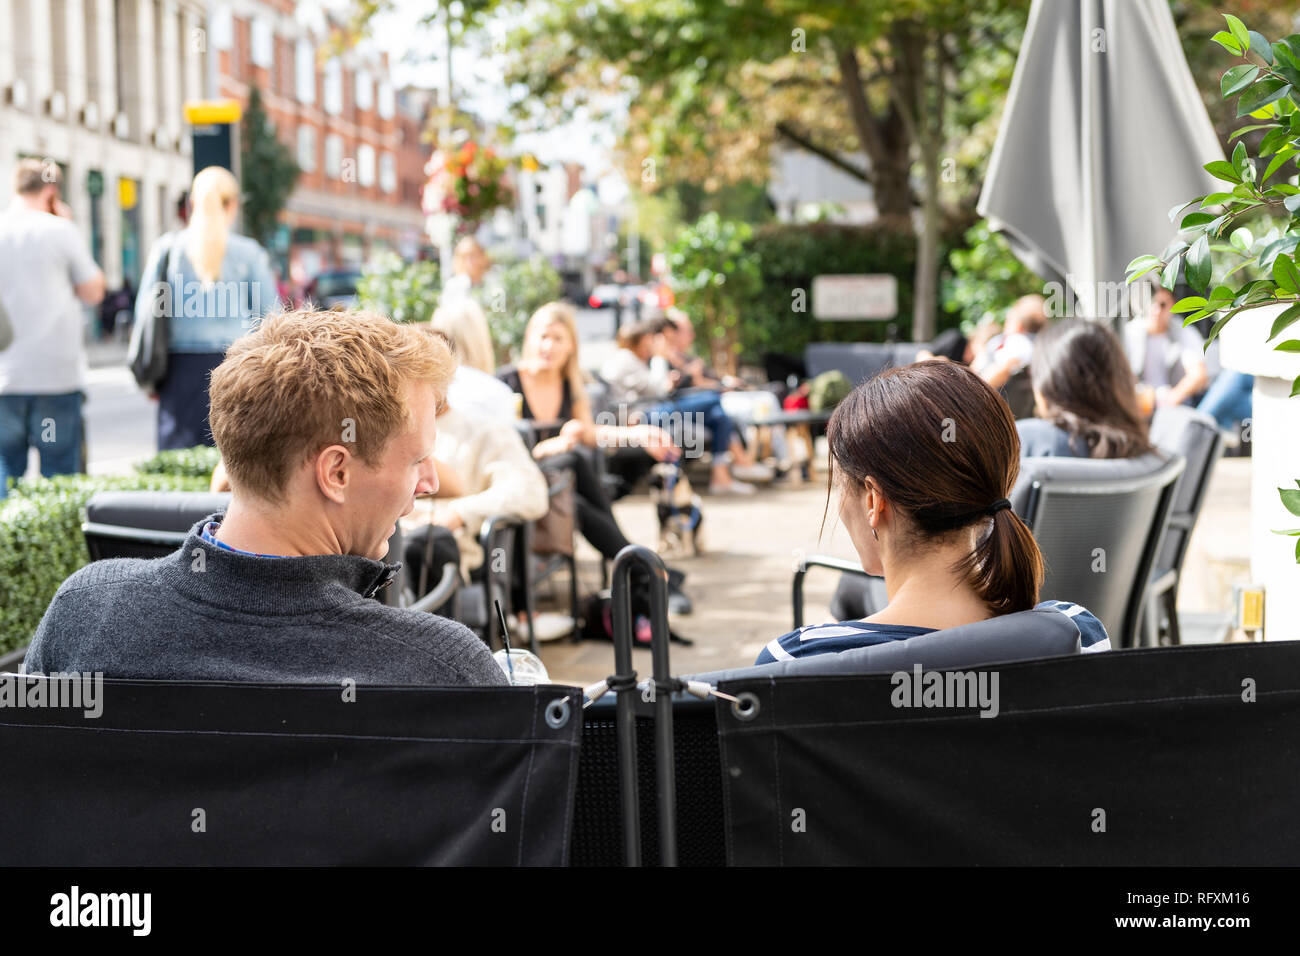 London, UK - September 16, 2018: Man and woman young couple sitting outside at cafe table in Chelsea outdoor restaurant street sidewalk at Joe and the - Stock Image